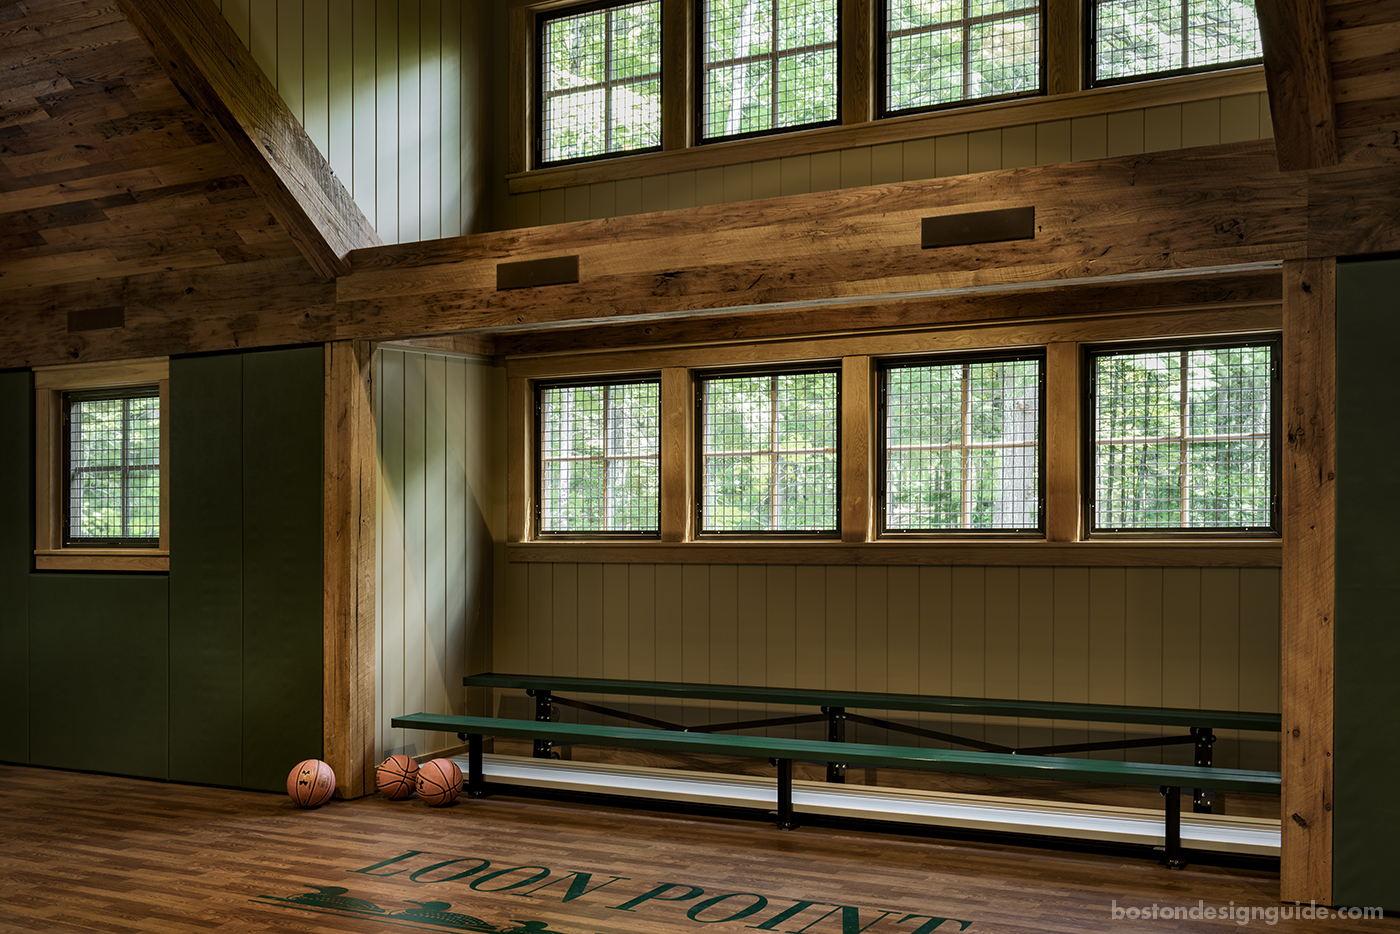 high-end New England architects, basketball court